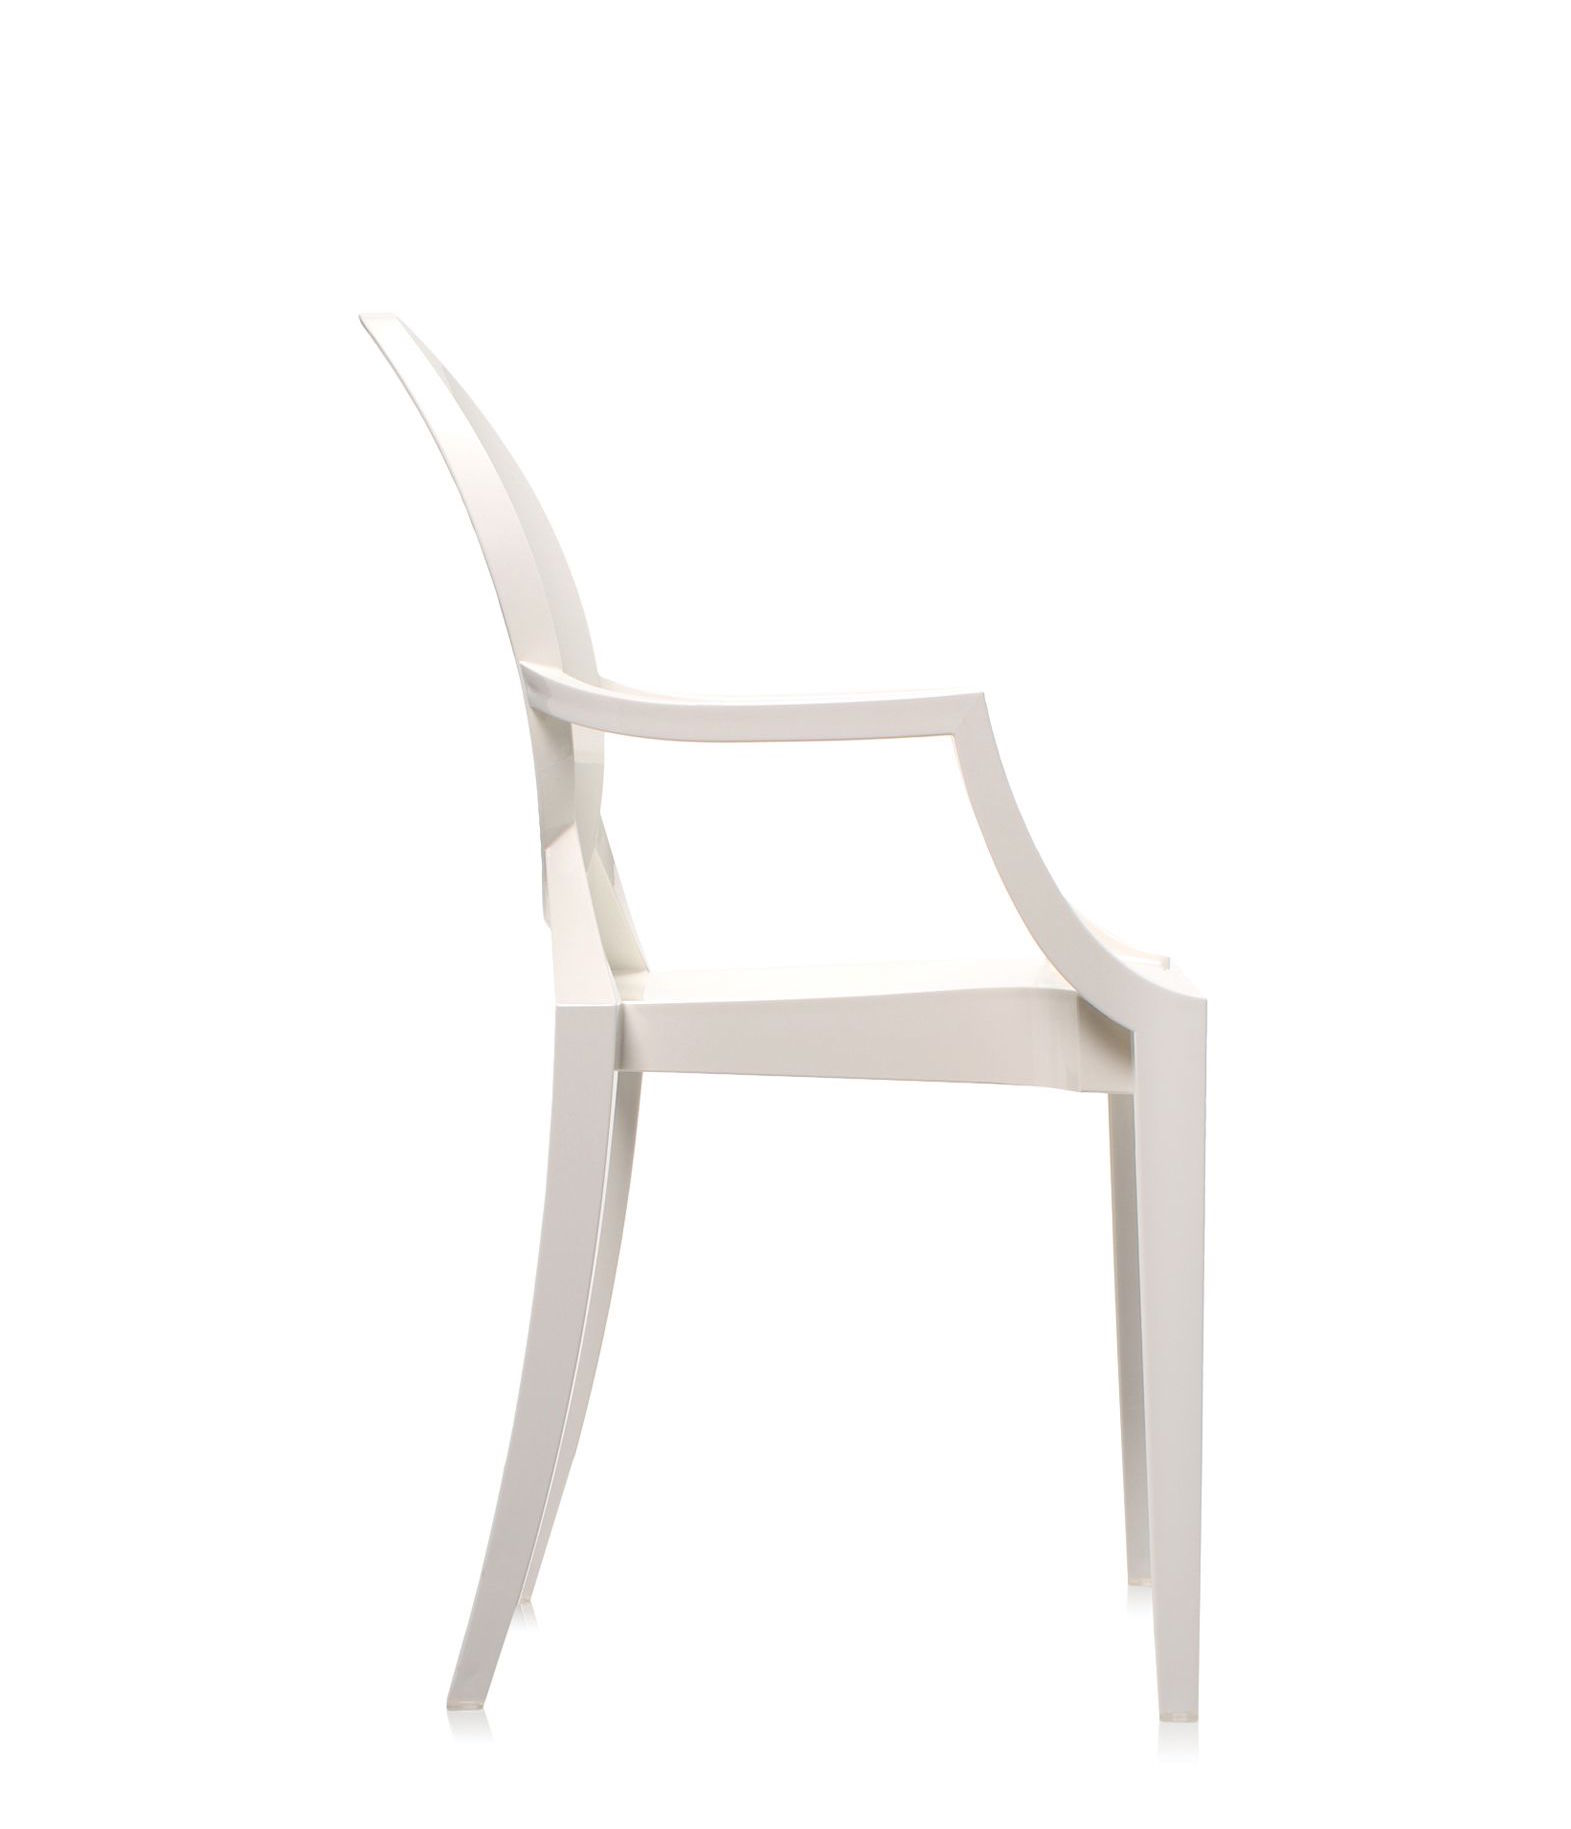 Kartell Stuhl Louis Ghost | Hotel ULTRA Online Shop